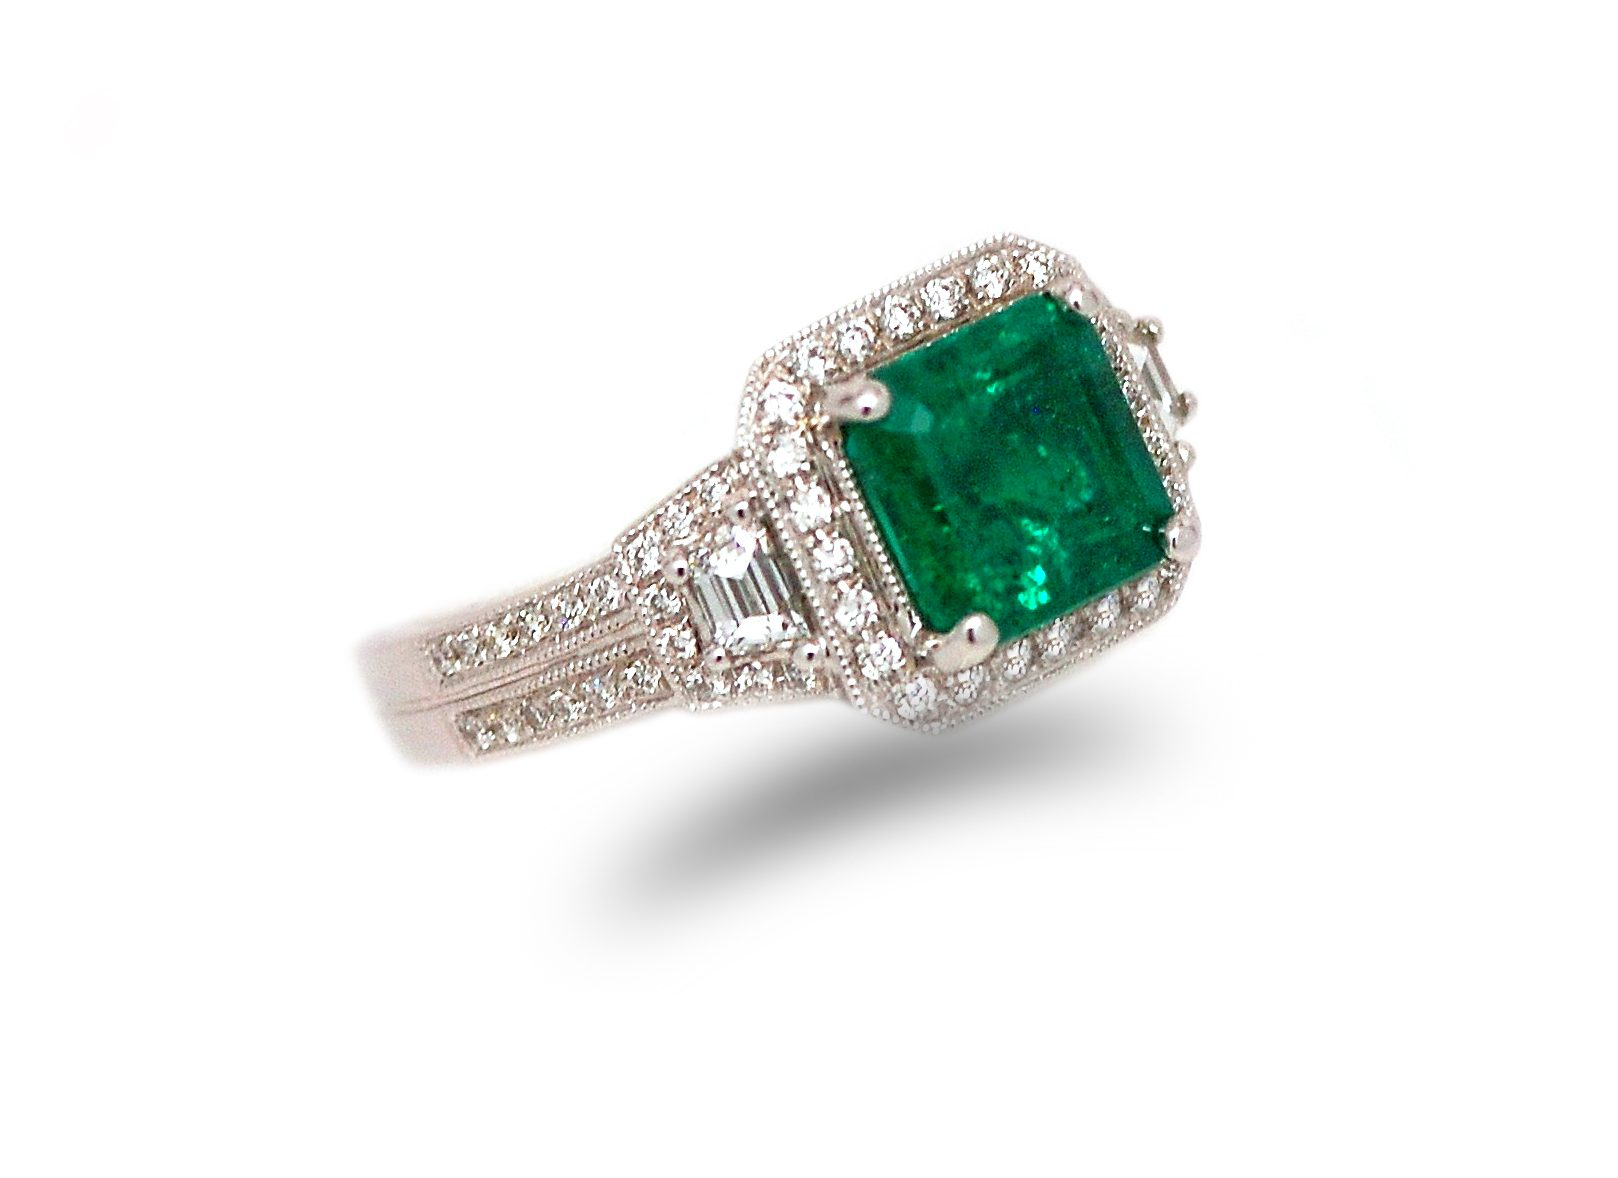 Emerald Sterling Silver Ring with Diamond Accents//Round-Shaped